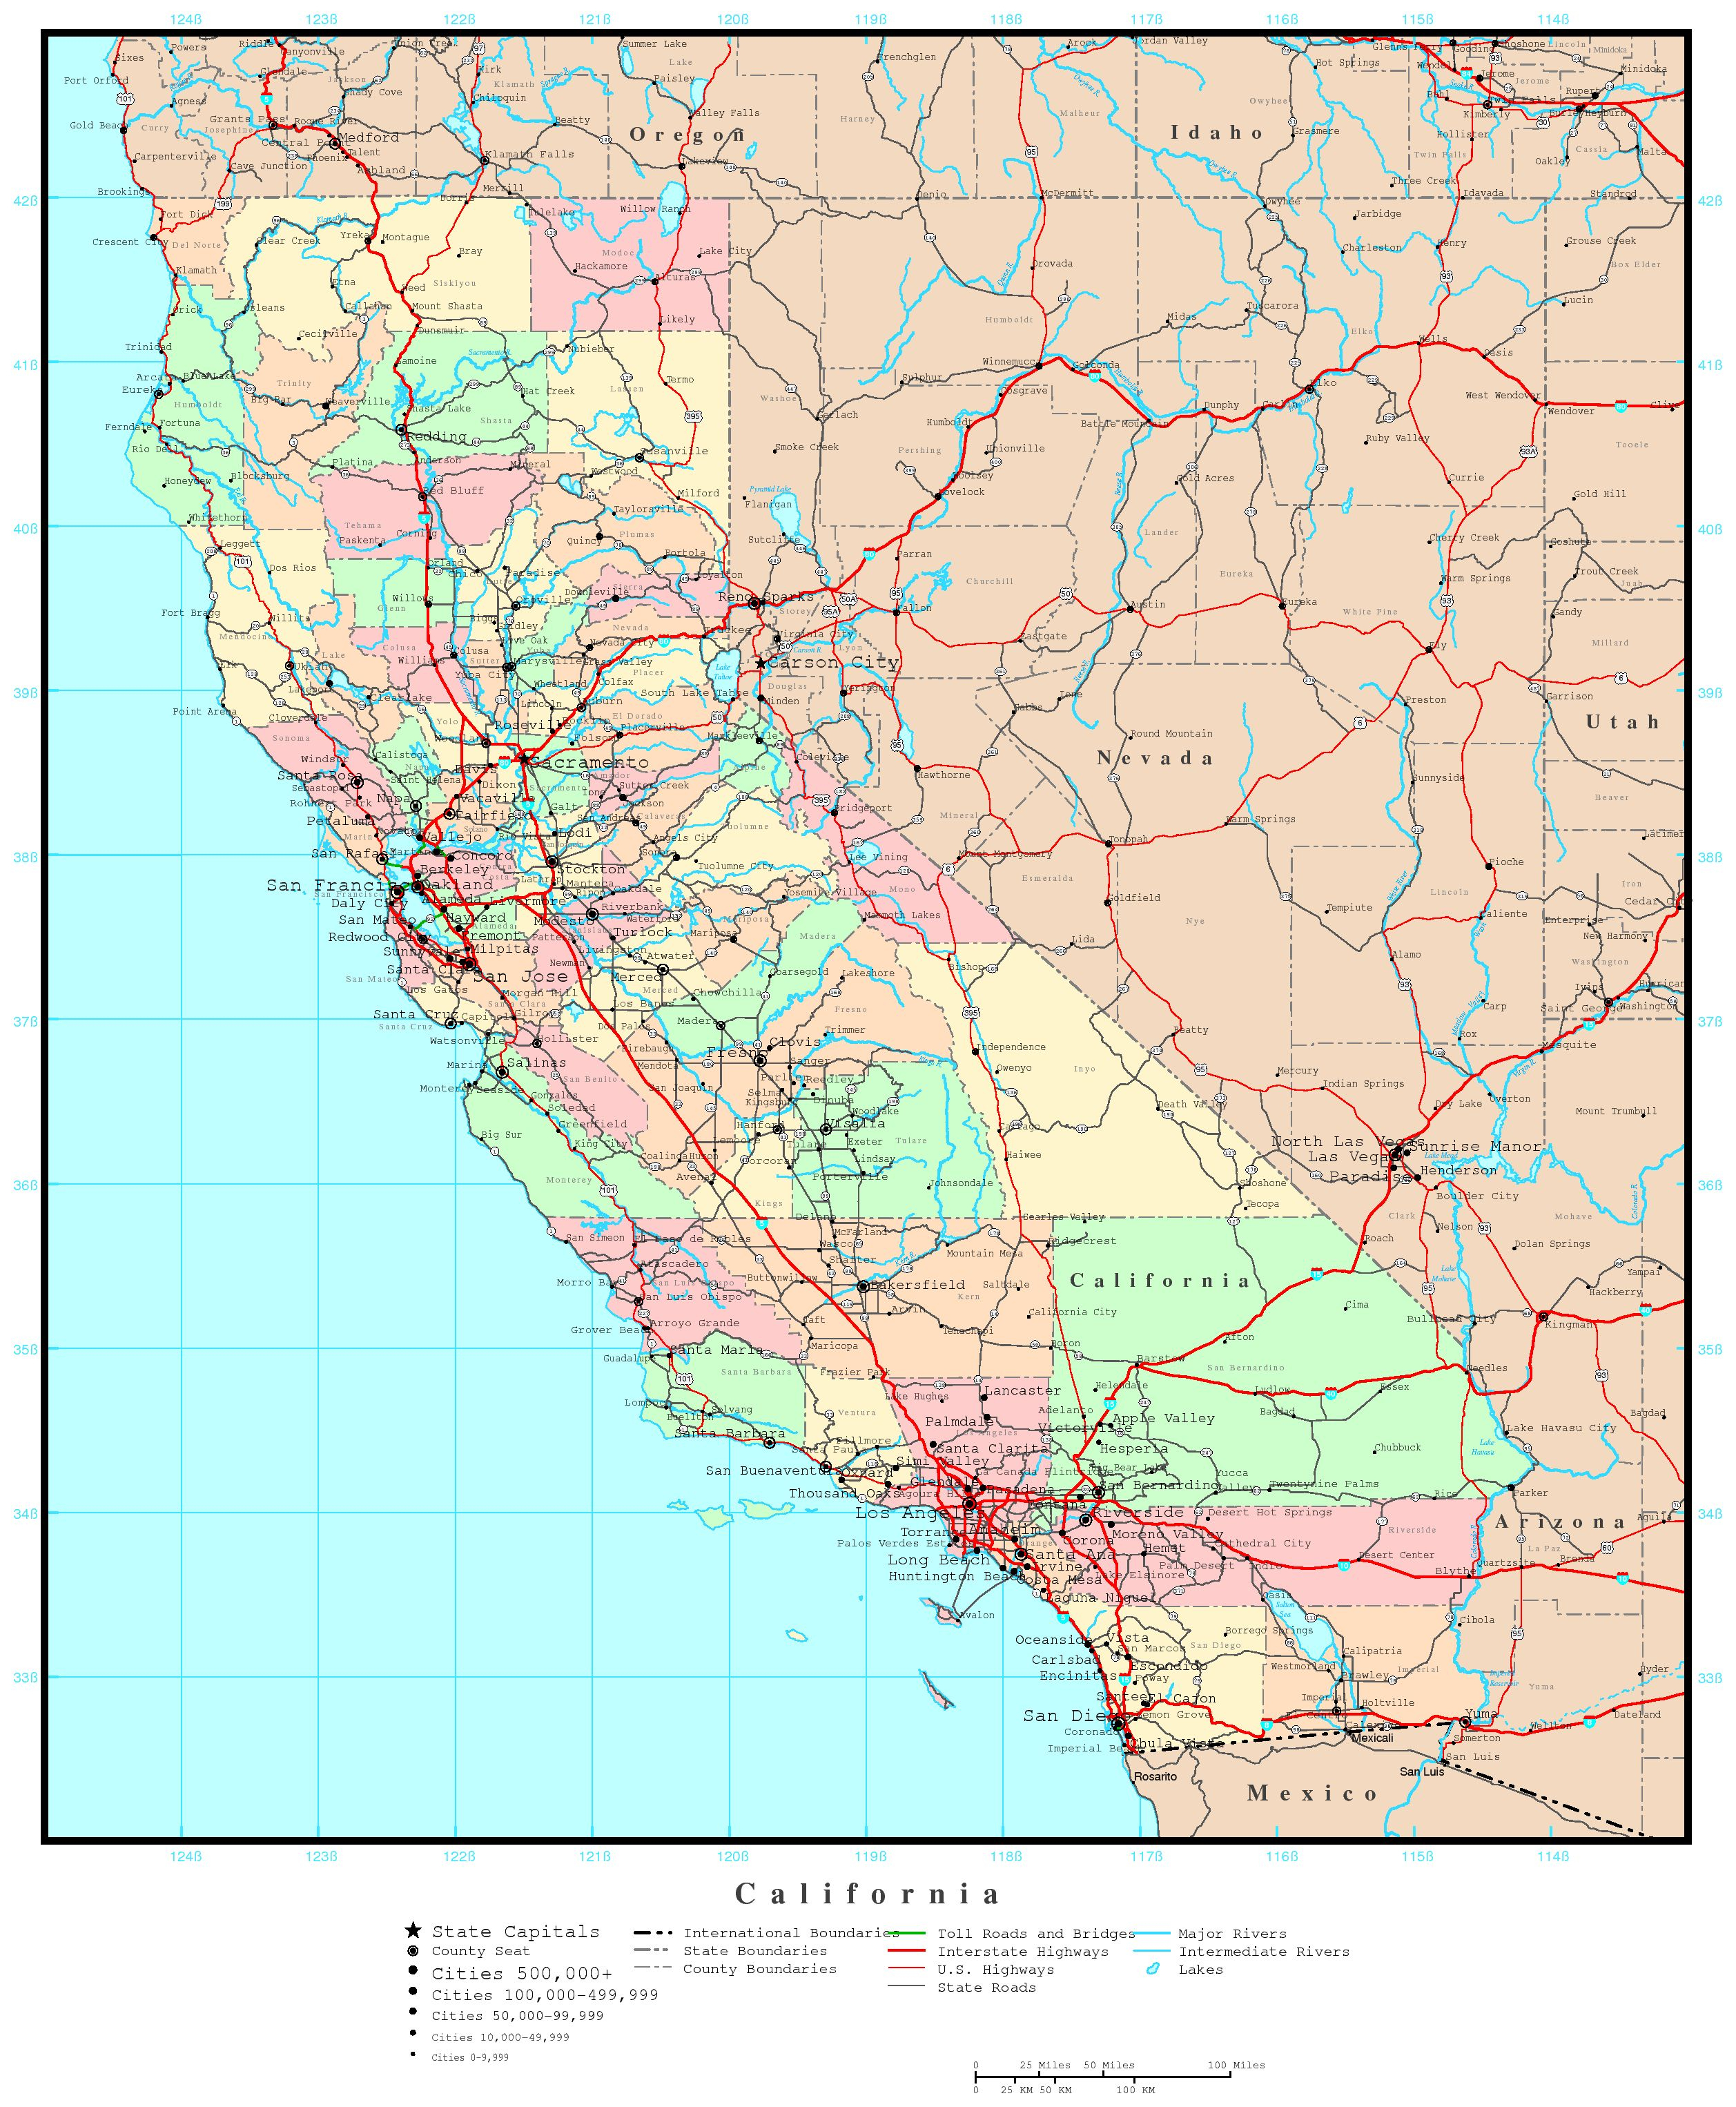 California County Map For Maps Download Maps Maps Of California - California County Map With Roads